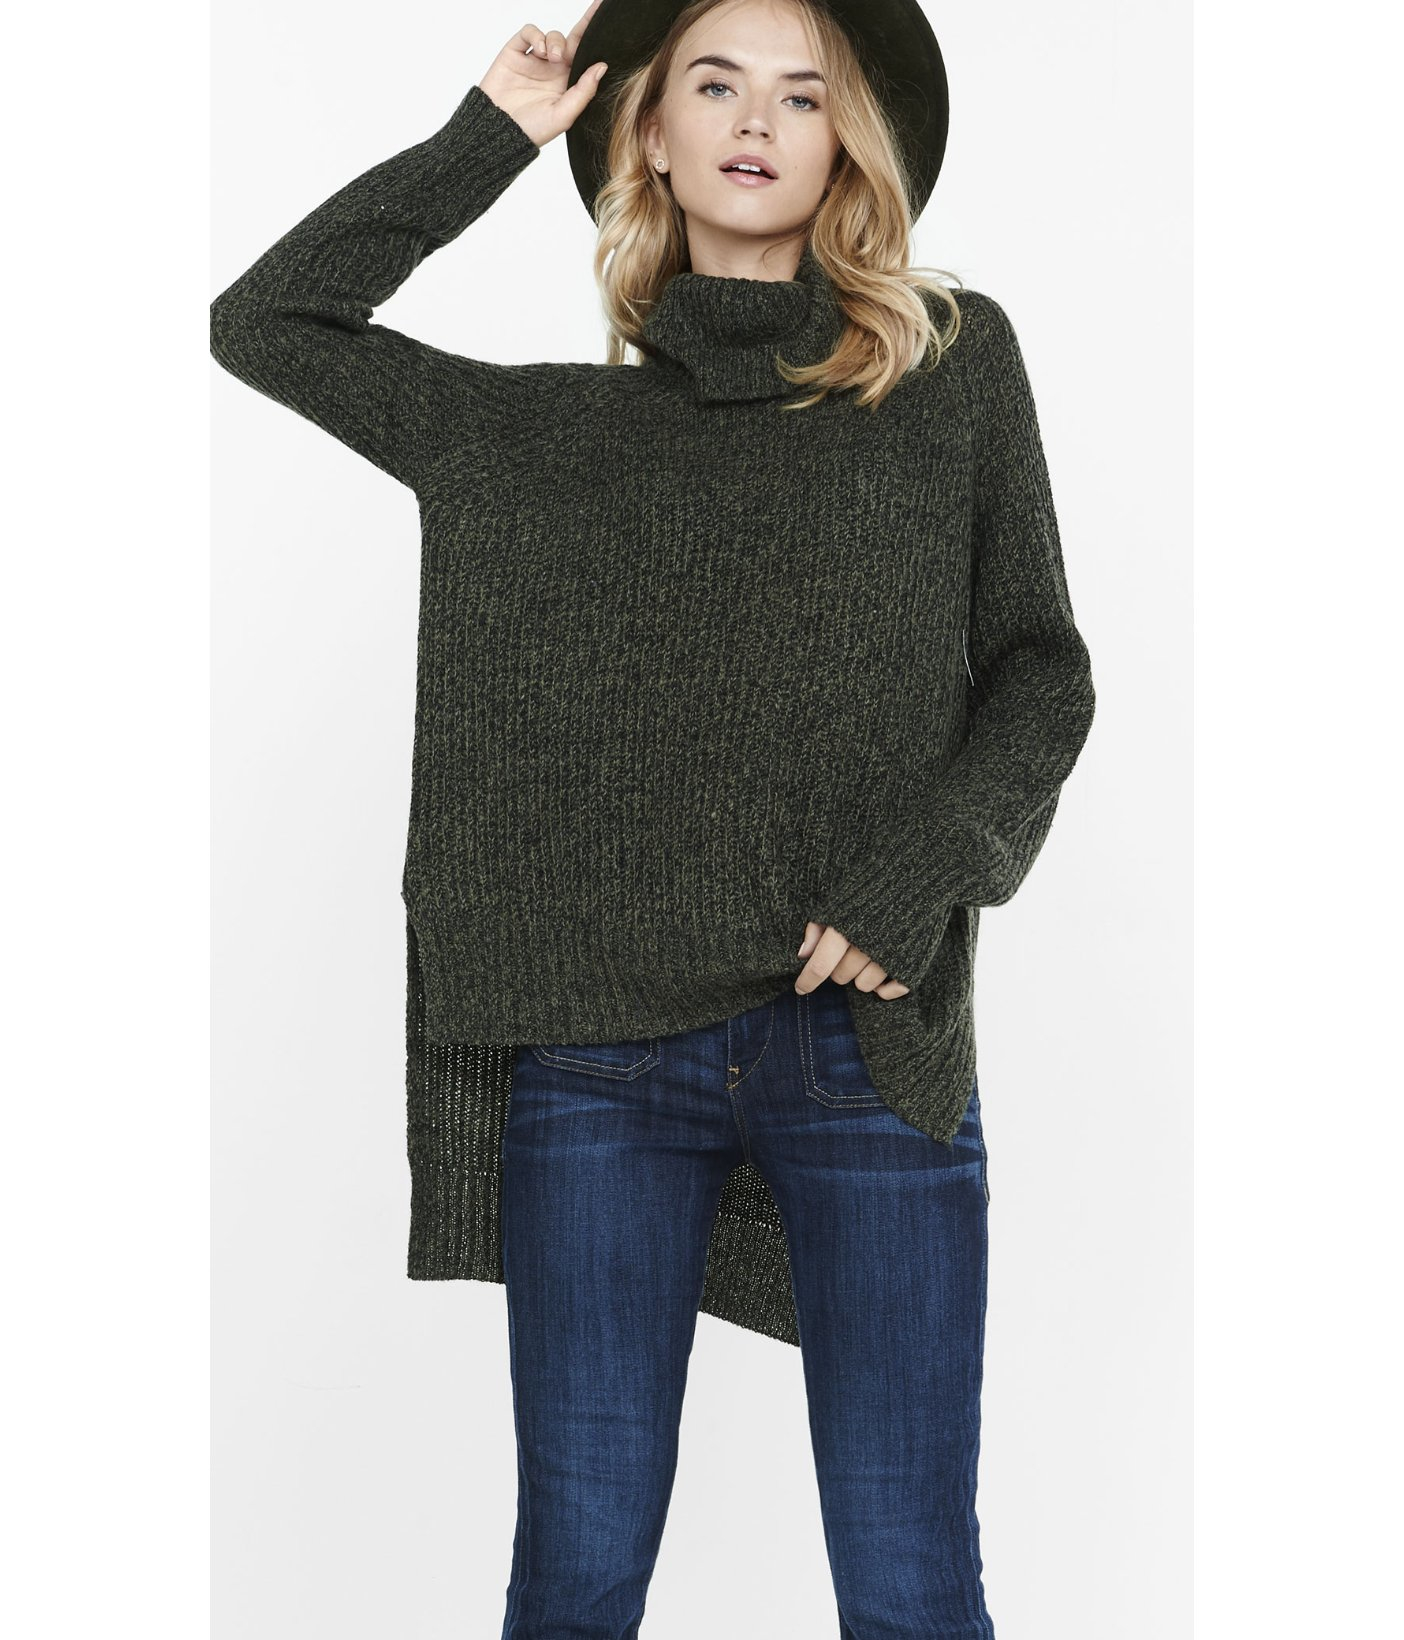 Express Marled Extreme Hi-lo Hem Turtleneck Sweater in Green | Lyst